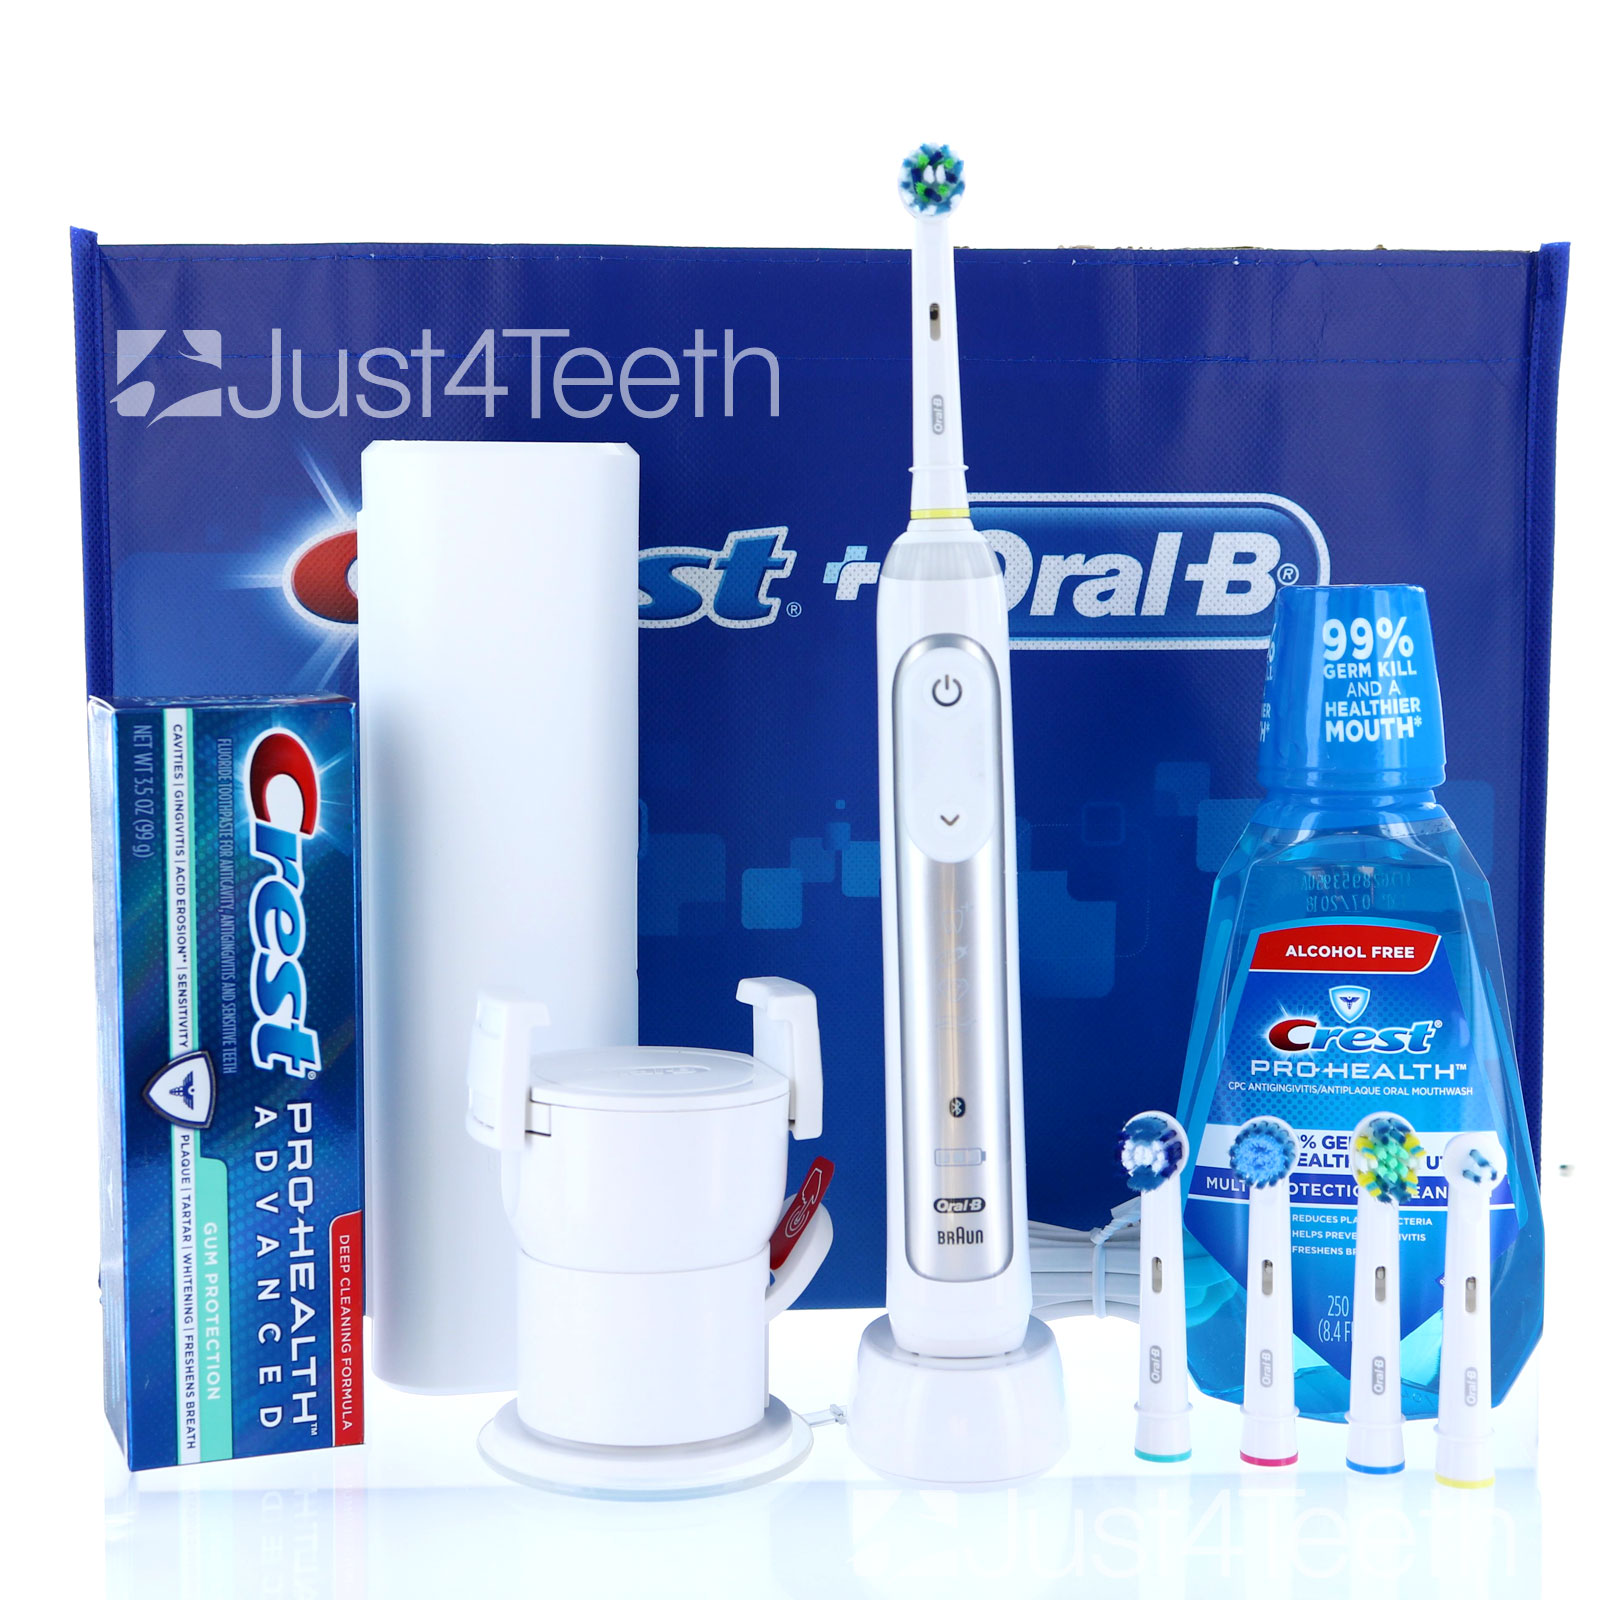 Oral-B GENIUS Pro Power Toothbrush with Bluetooth